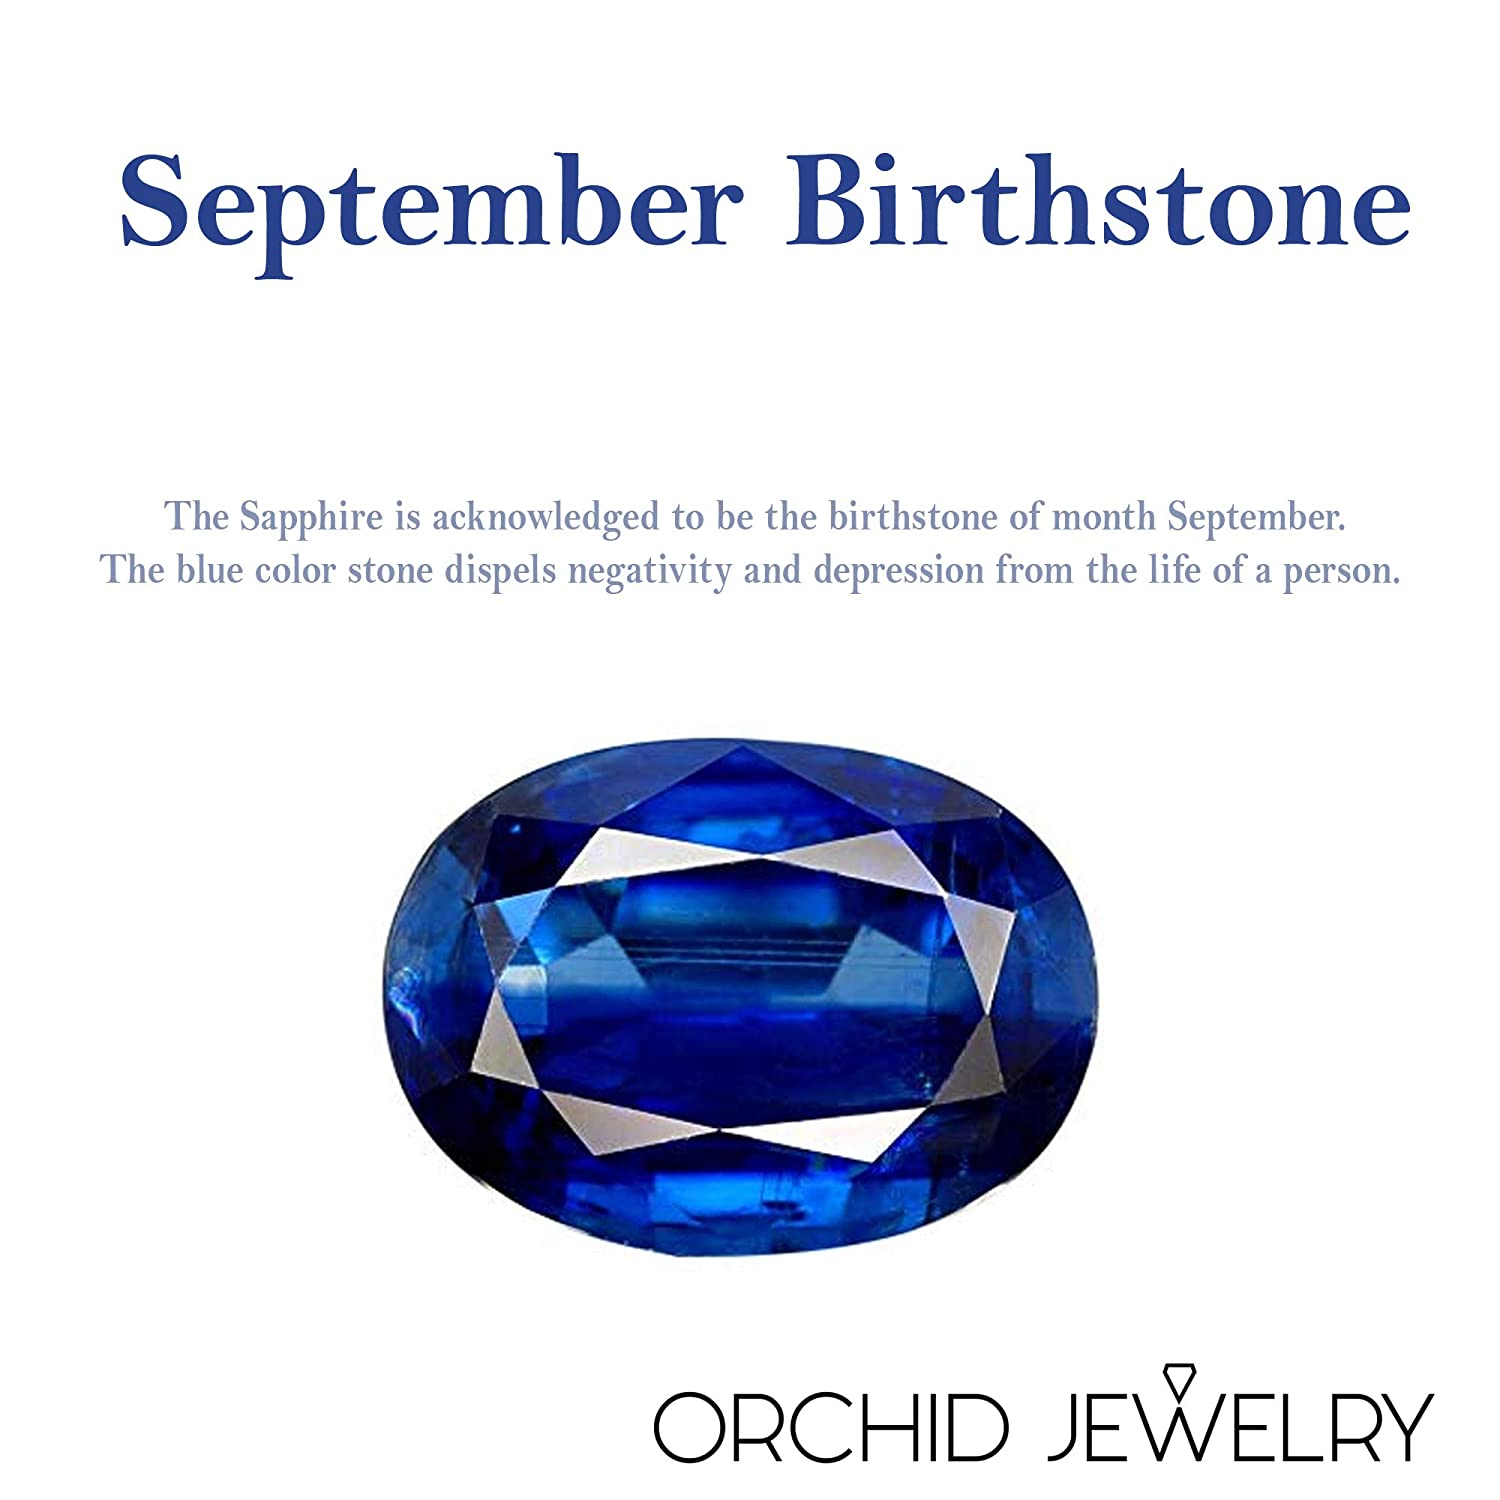 925 Sterling Silver Halo Ring For Girls Natural September Birthstone Gemstone Rings A Simple and Beautiful Birthday Gift For Wife Orchid Jewelry 1.60 Ctw 7x5mm Oval Blue Sapphire Ring For Women